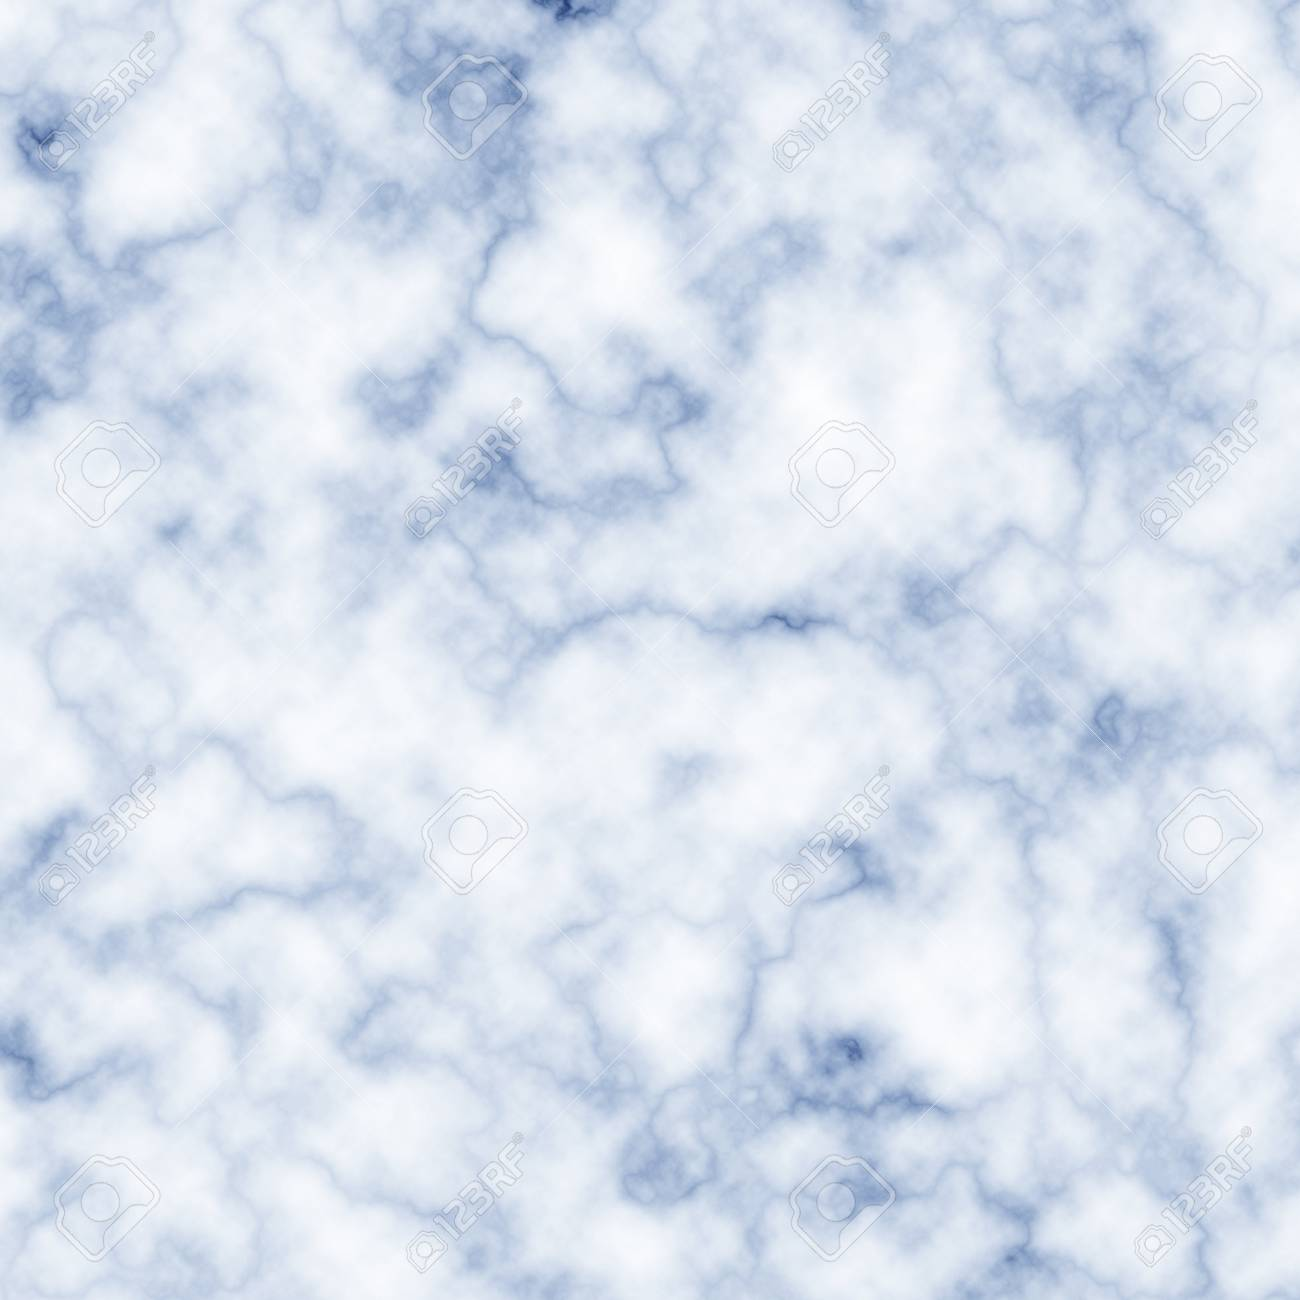 White Blue Marble Patterns Texture Abstract Background Stock Photo Picture And Royalty Free Image Image 97119333